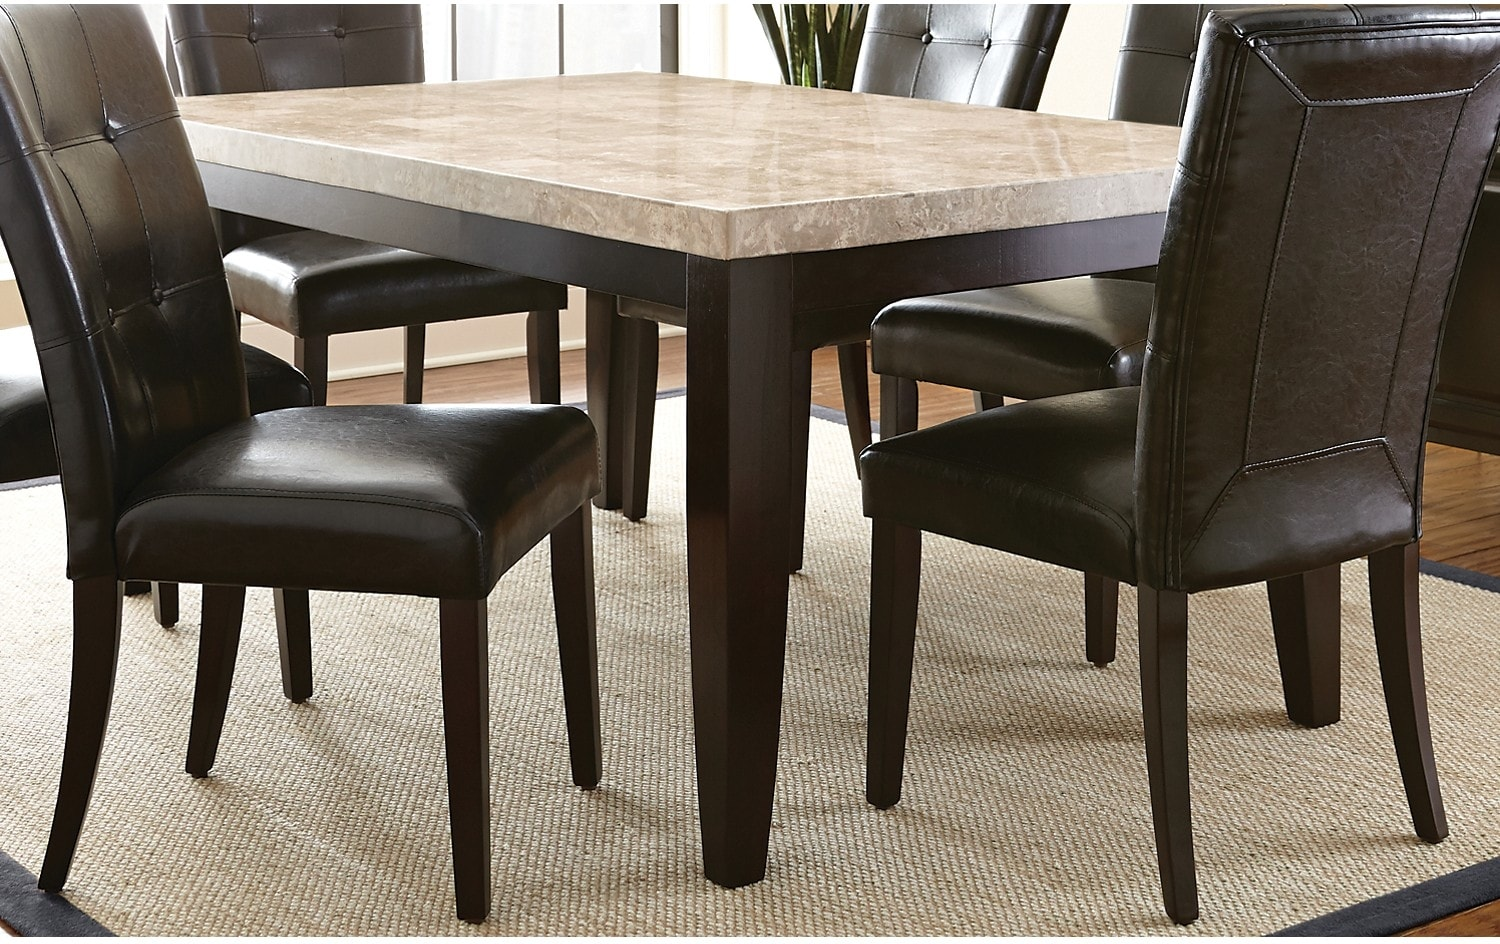 Dining Room Furniture - Dursley Dining Table